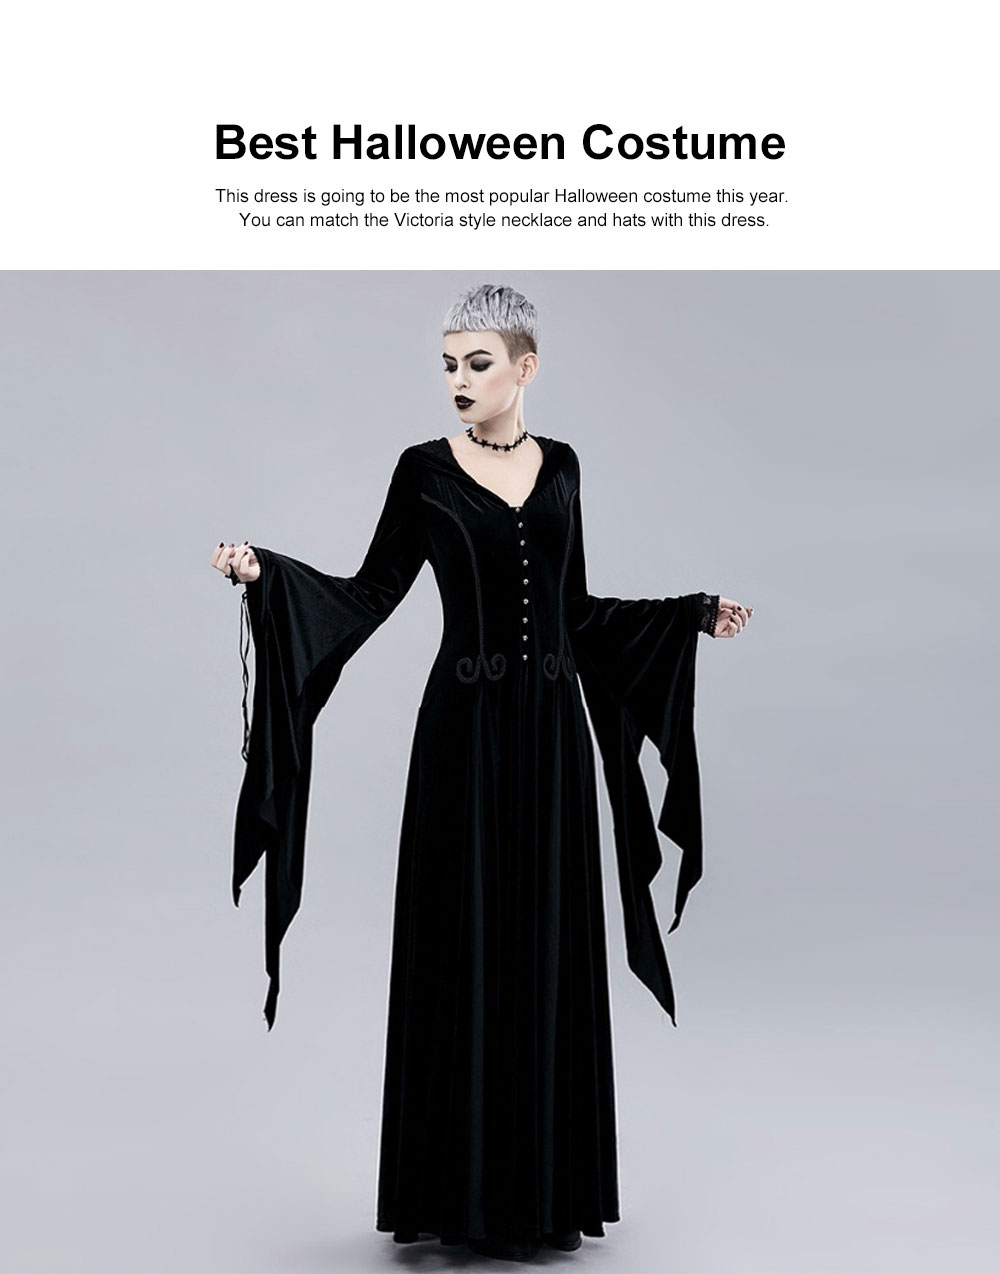 Women Gothic Halloween Costume, Renaissance Medieval Cosplay Dress Black, Long Sleeve Hooded Witch Dress Victorian Costume 1